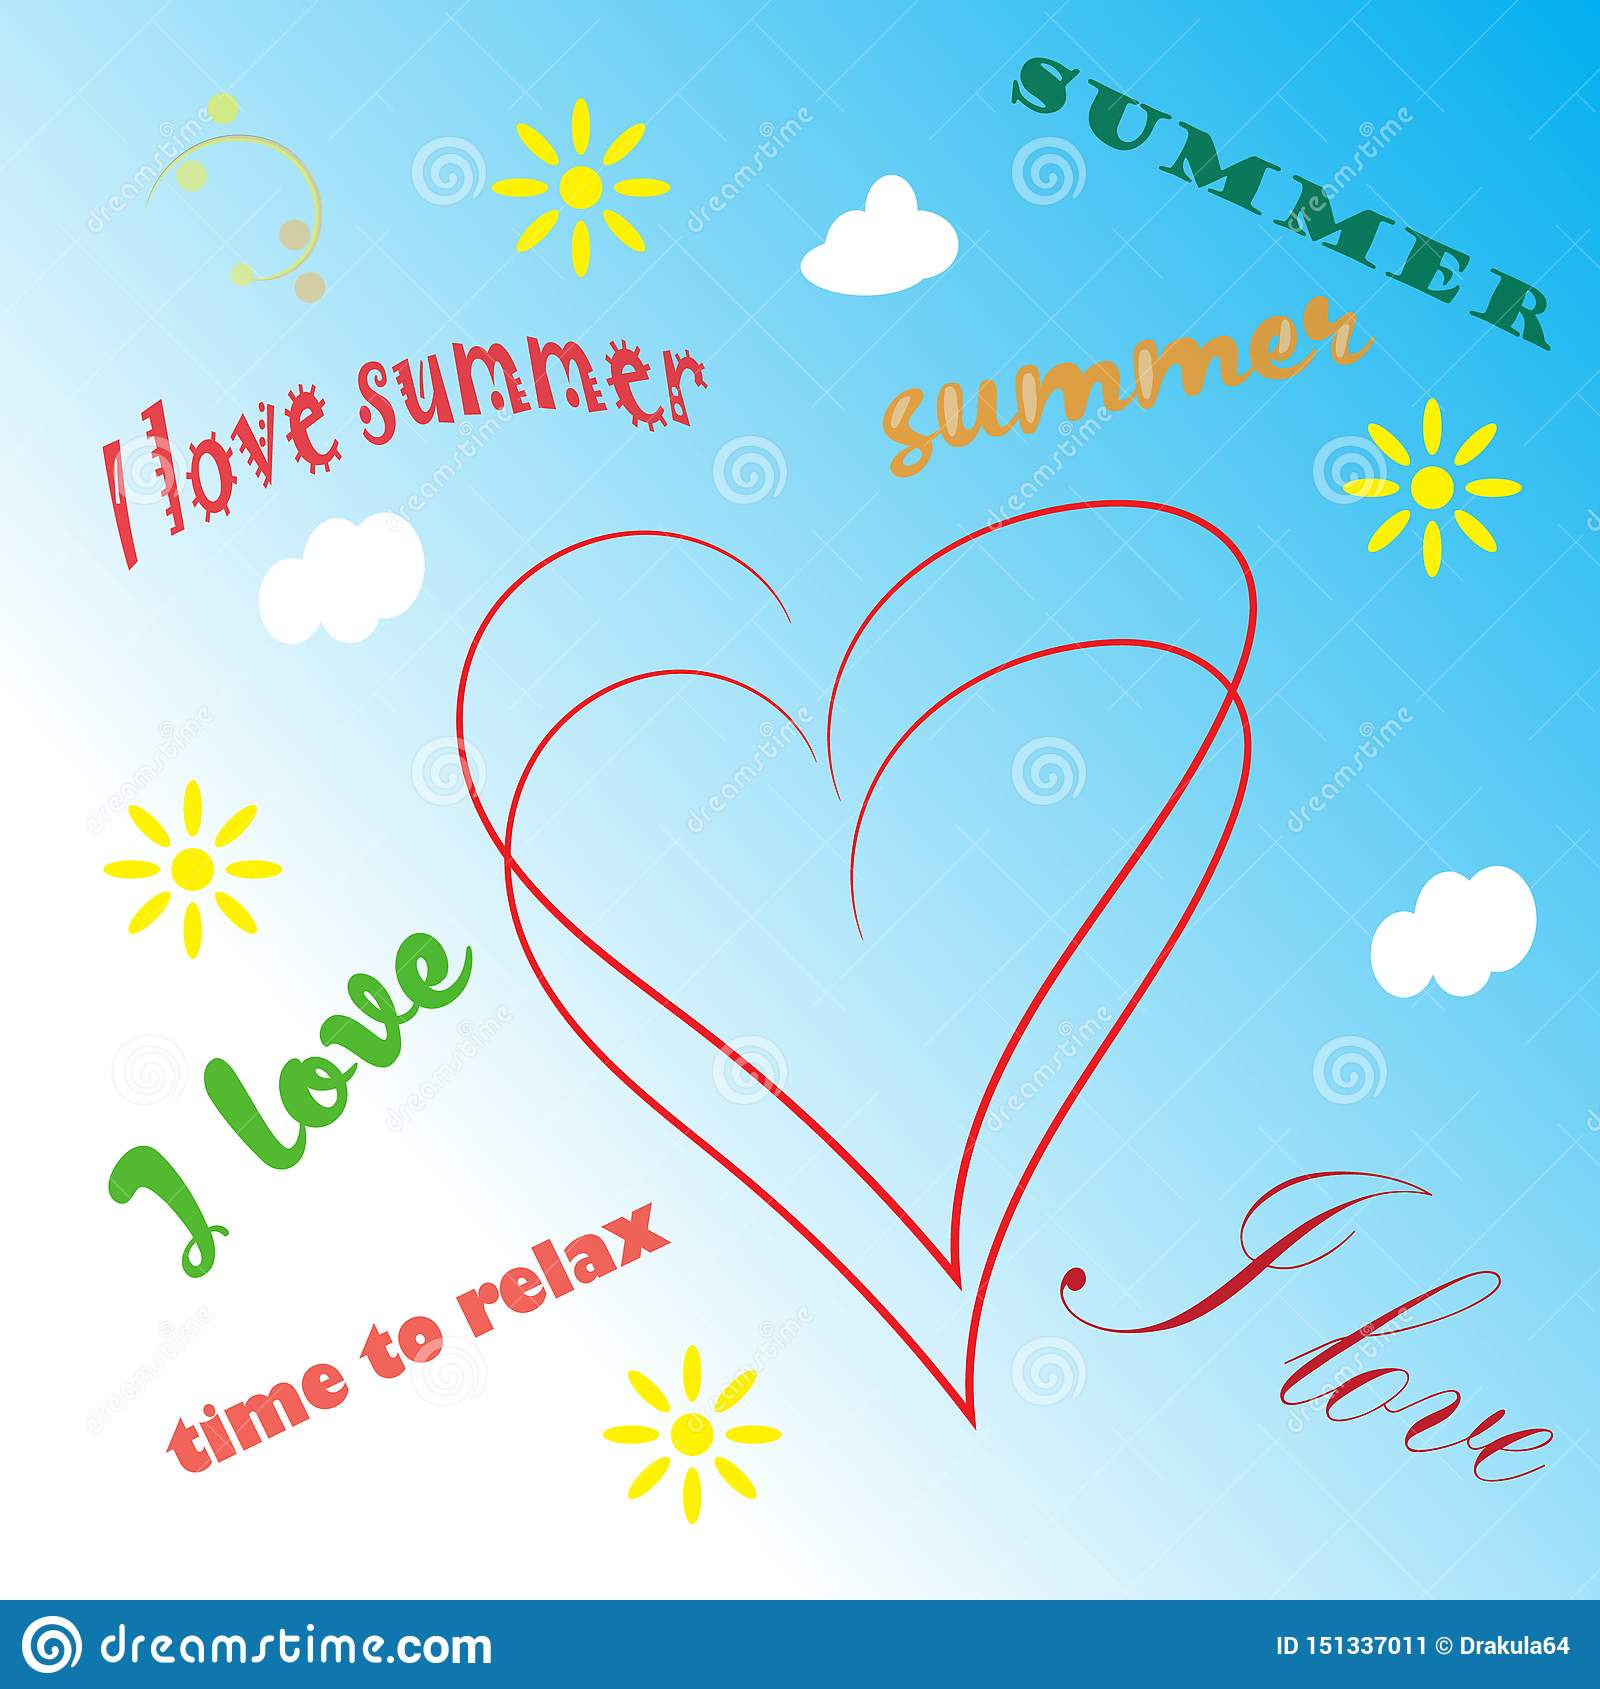 Summer time background with text illustration